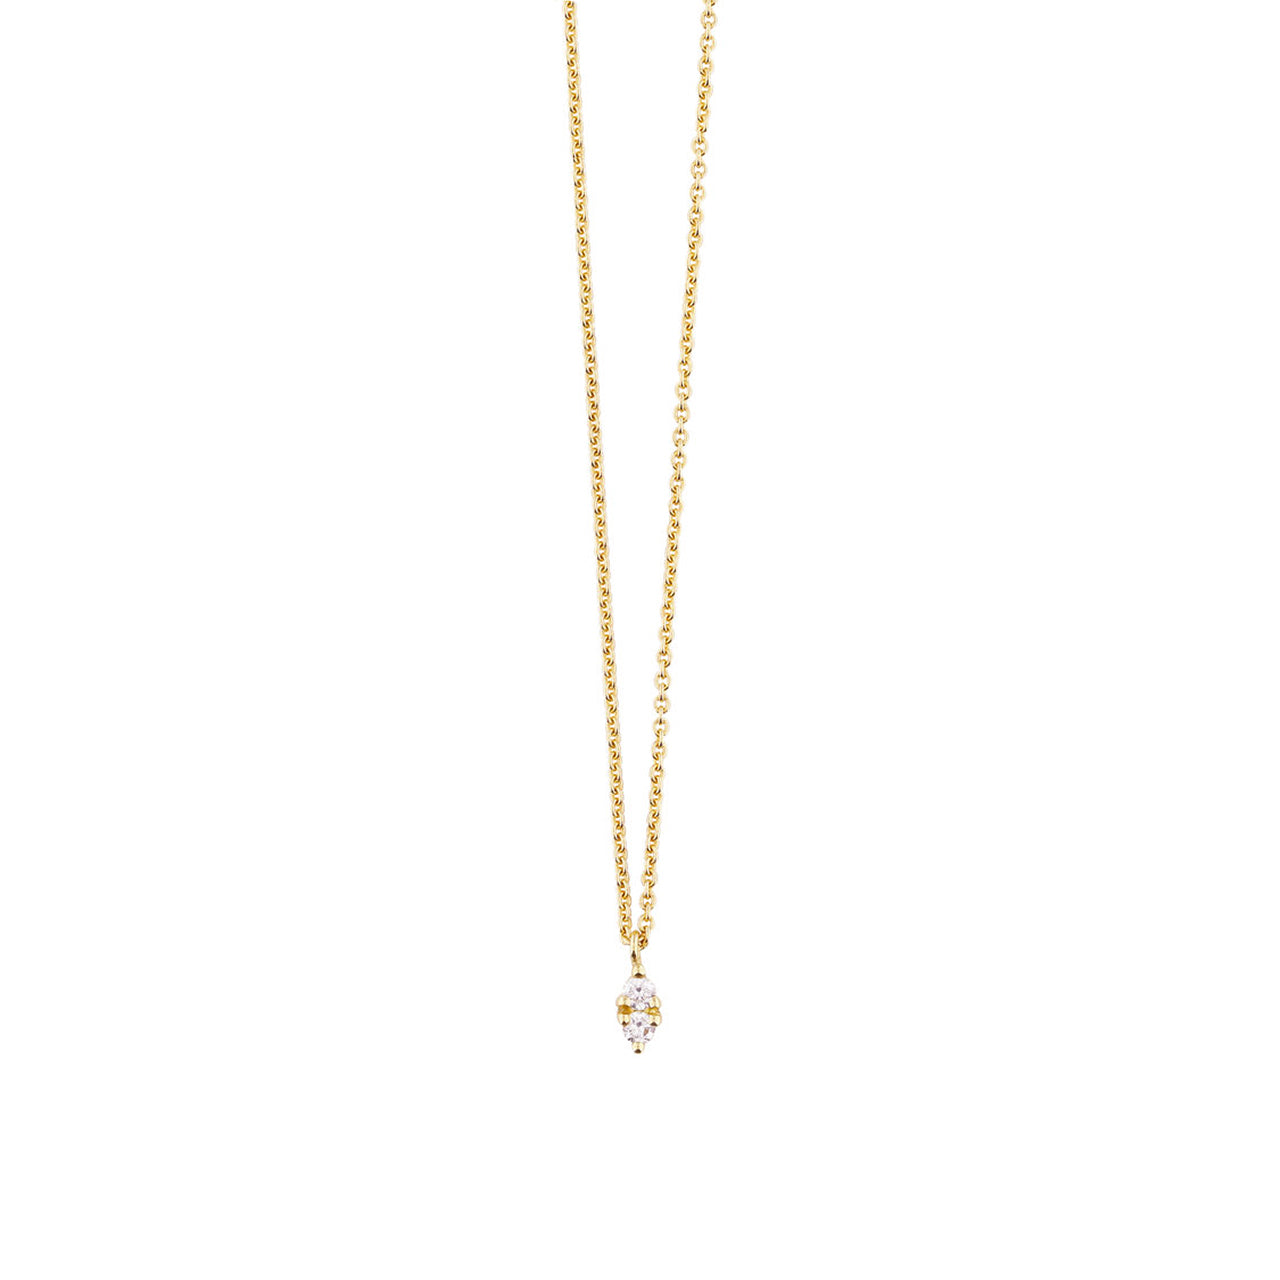 18 carat yellow gold noëmie necklace